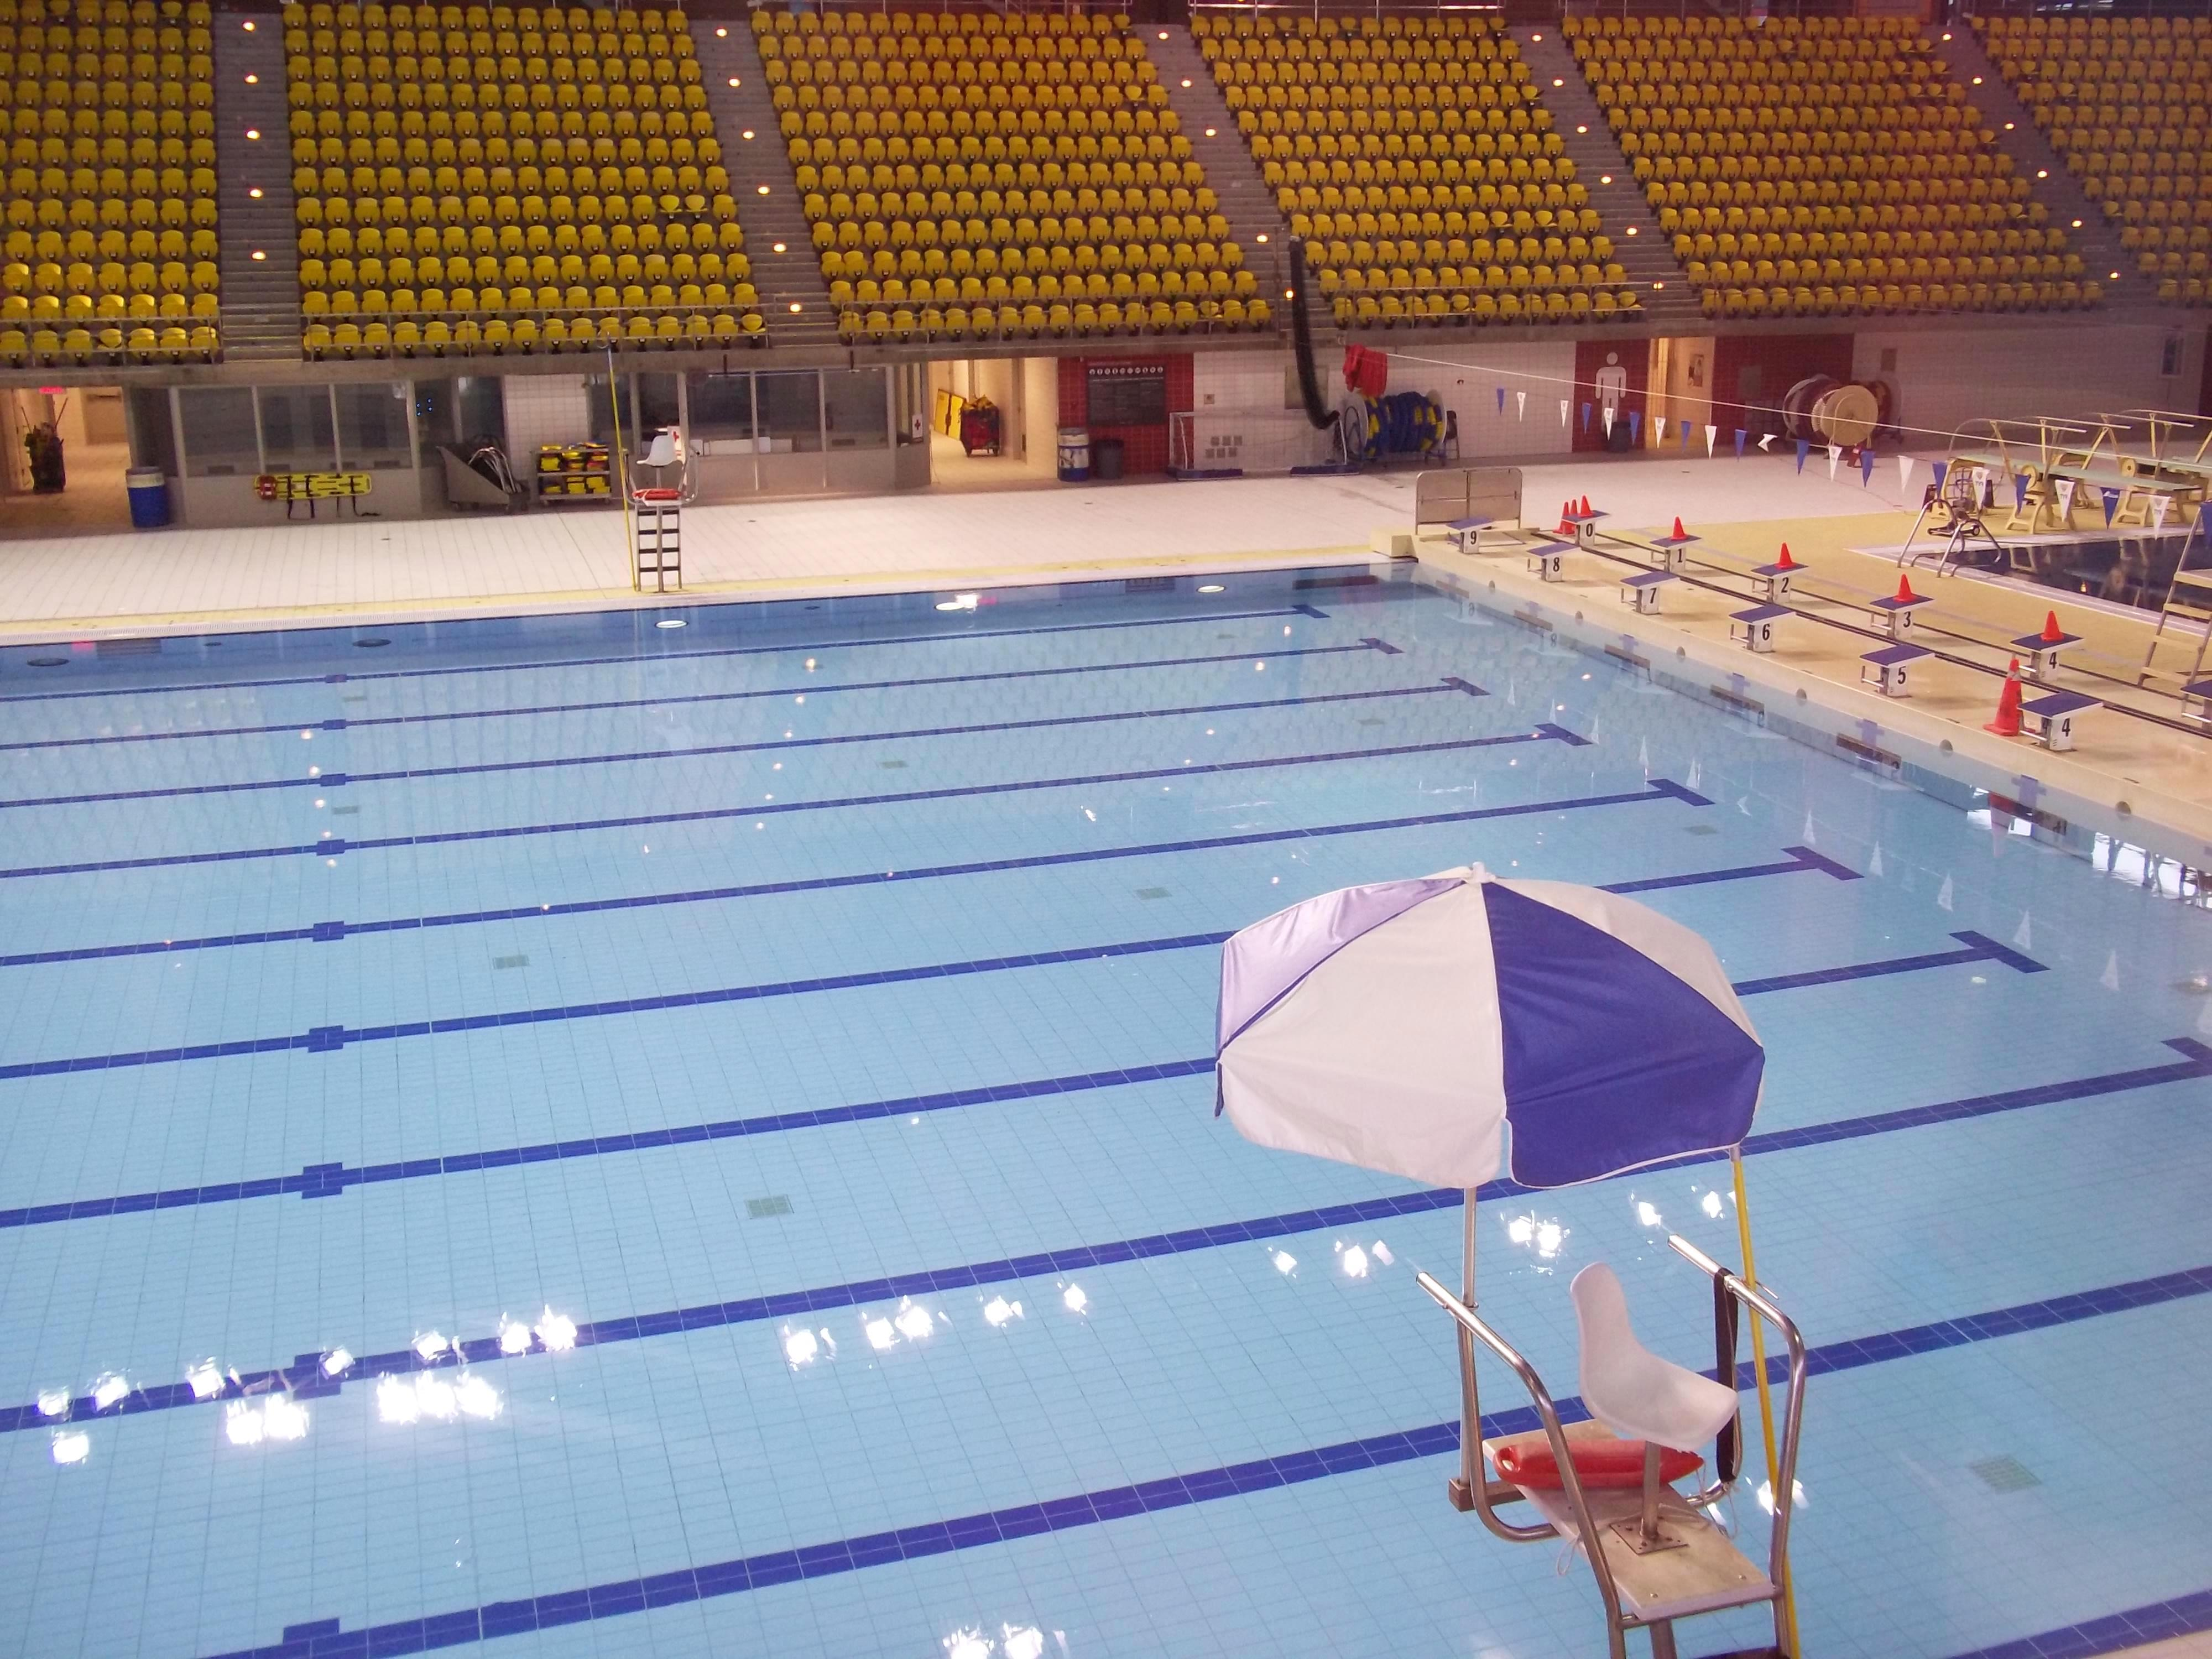 Complexe sportif claude robillard image for Centre sportif claude robillard piscine